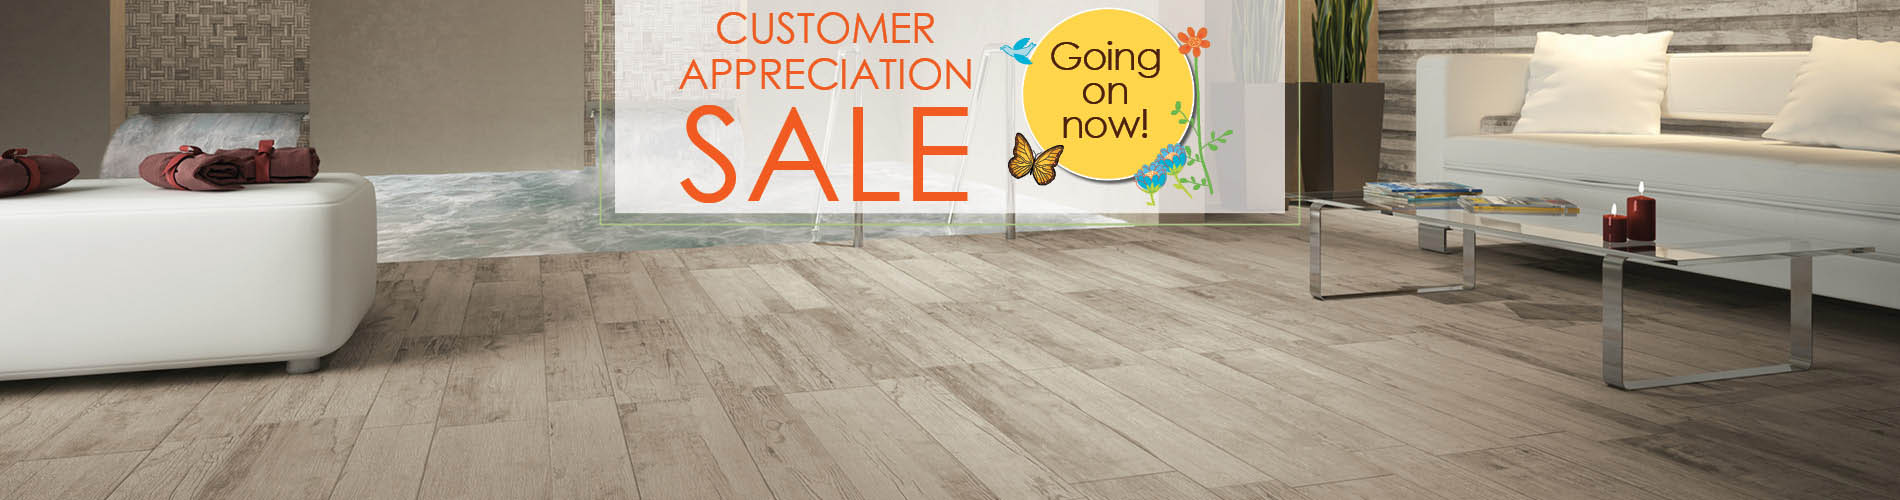 Save big on flooring this month during the Customer Appreciation Sale at Abbey Carpet & Floor!